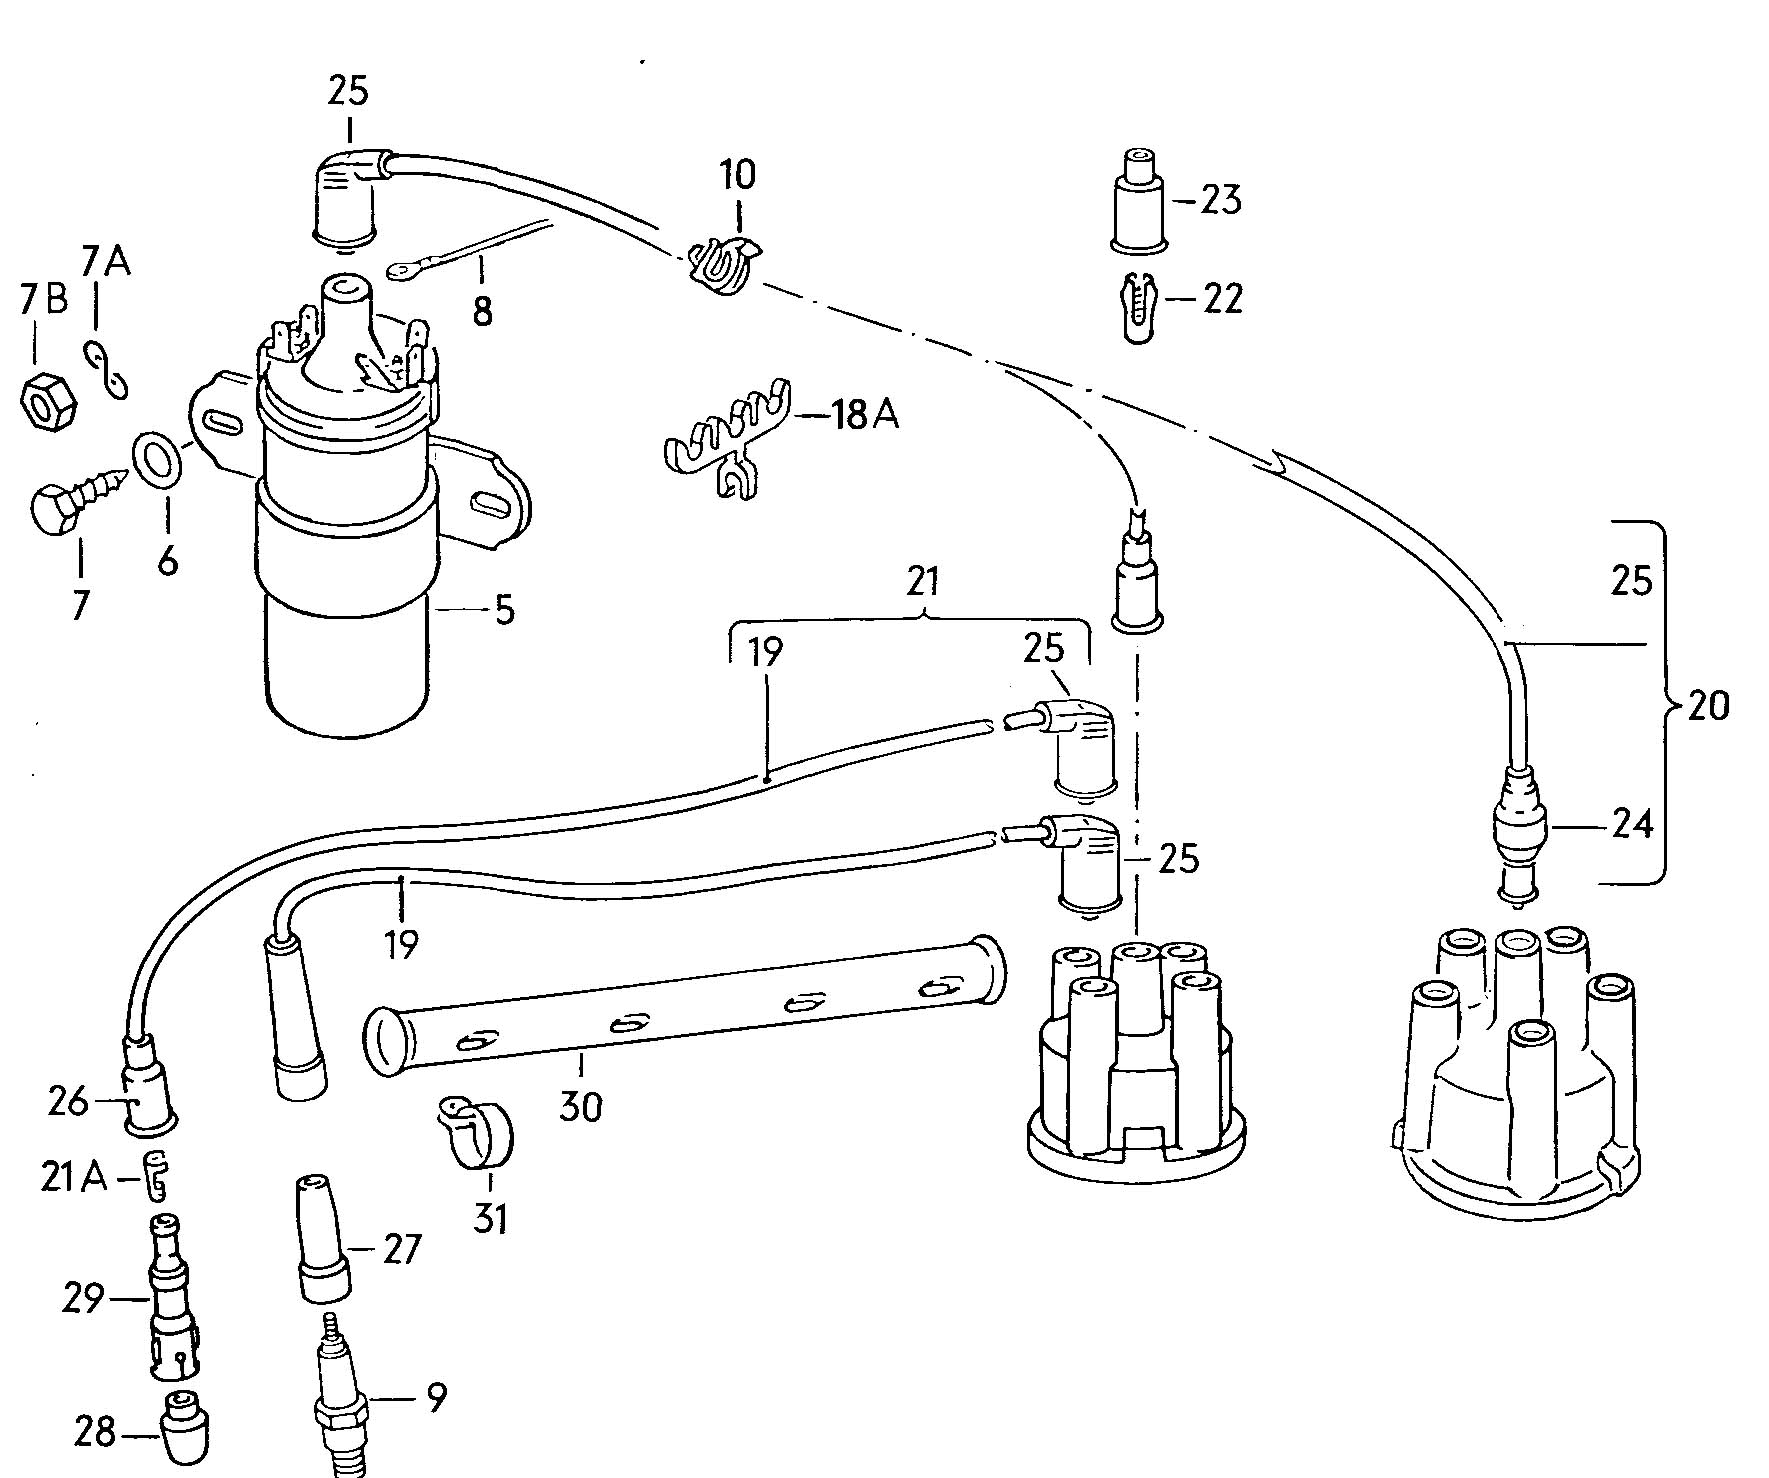 hight resolution of ignition coil wiring also 74 vw beetle ignition coil wiring diagram